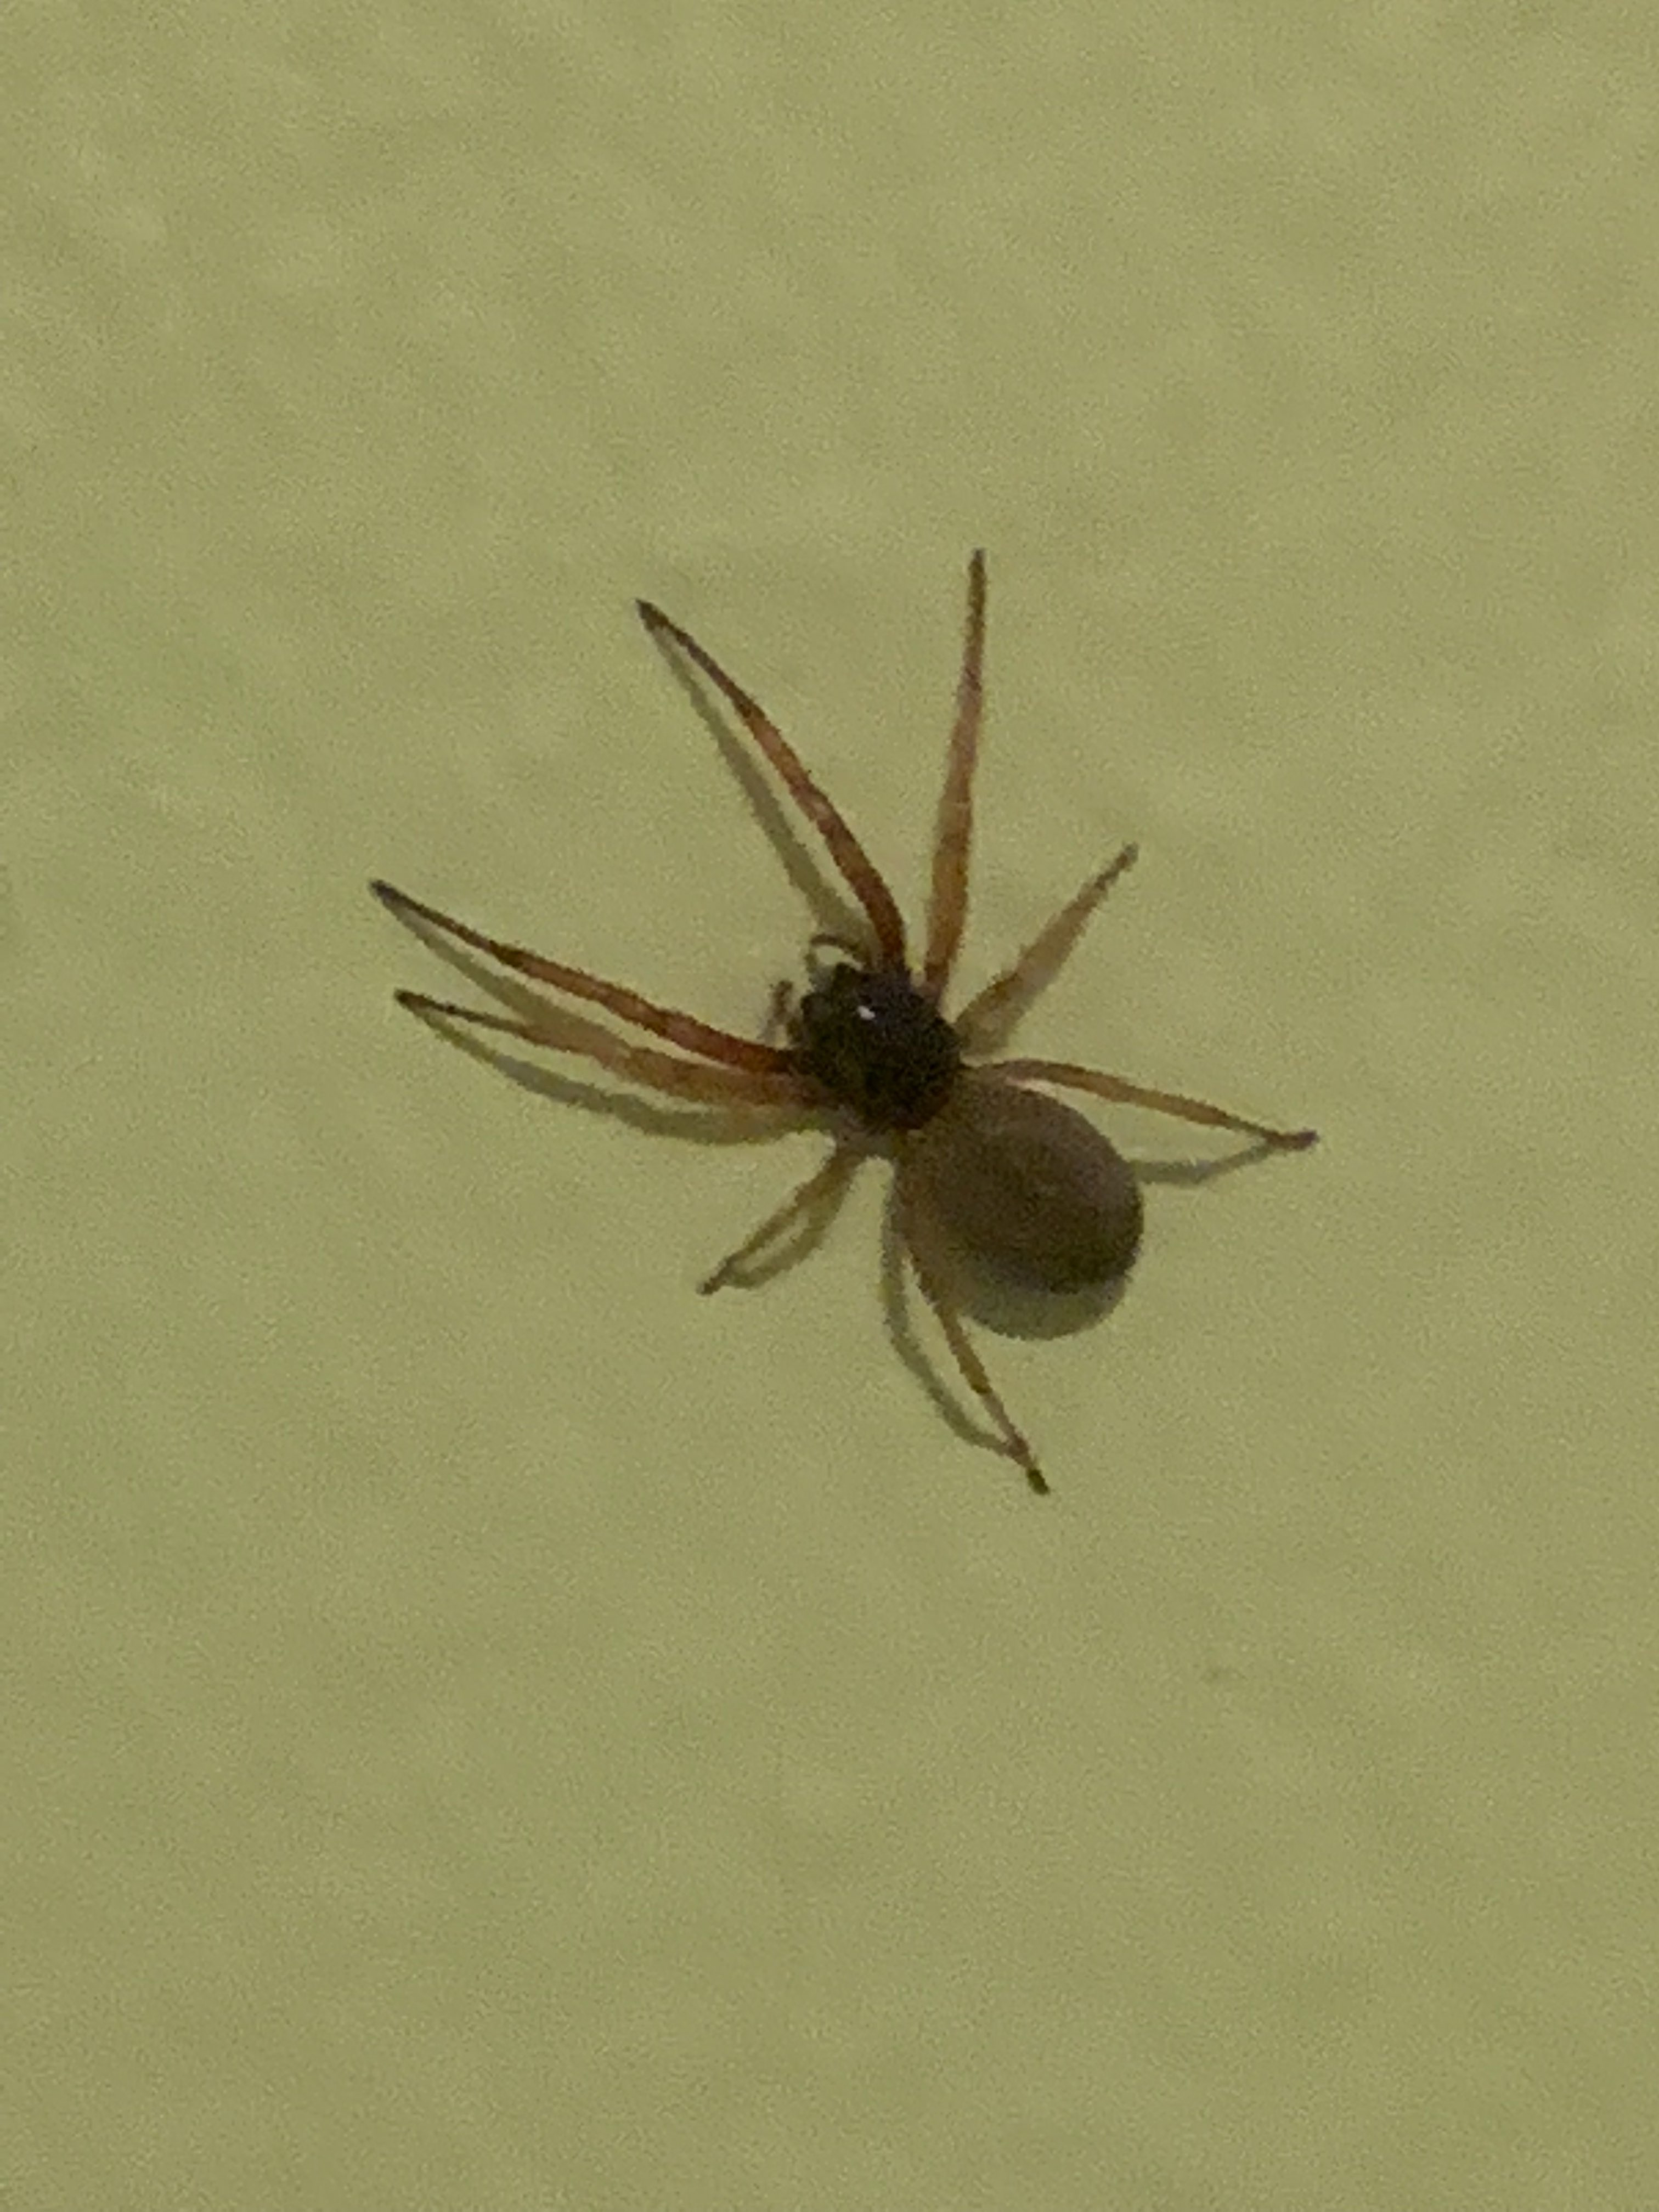 Picture of Trachelas tranquillus (Broad-faced Sac Spider) - Dorsal